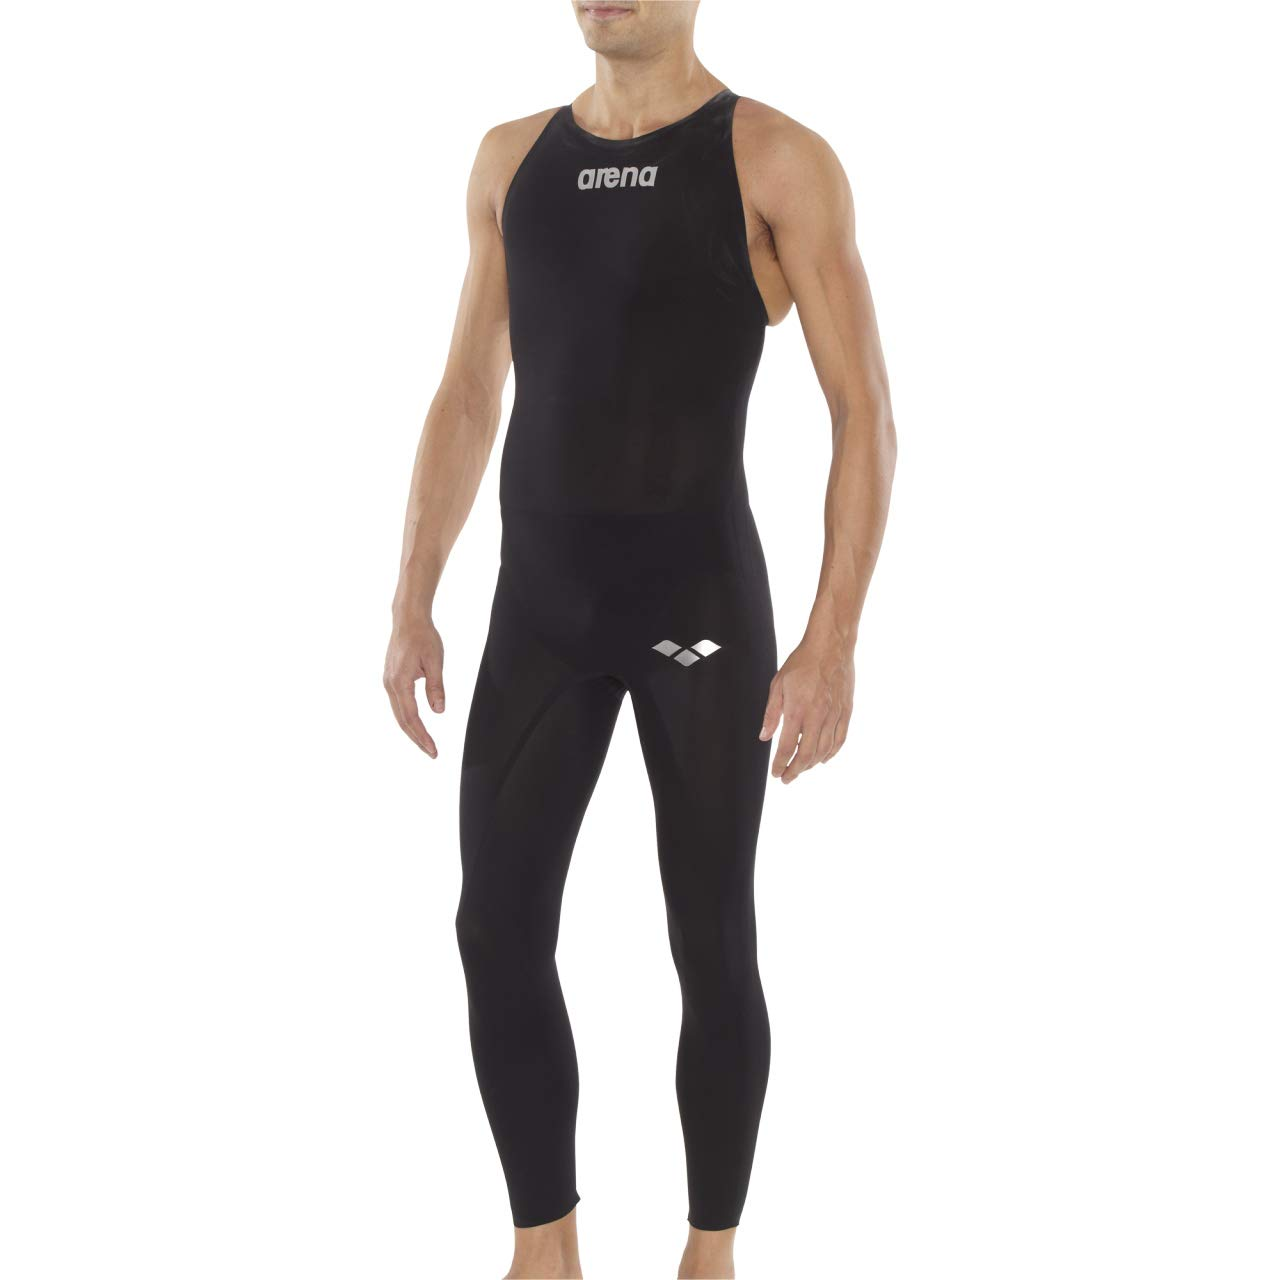 arena Powerskin R-Evo+ Open Water Closed Back Men's Racing Swimsuit, Black, 24 by Arena